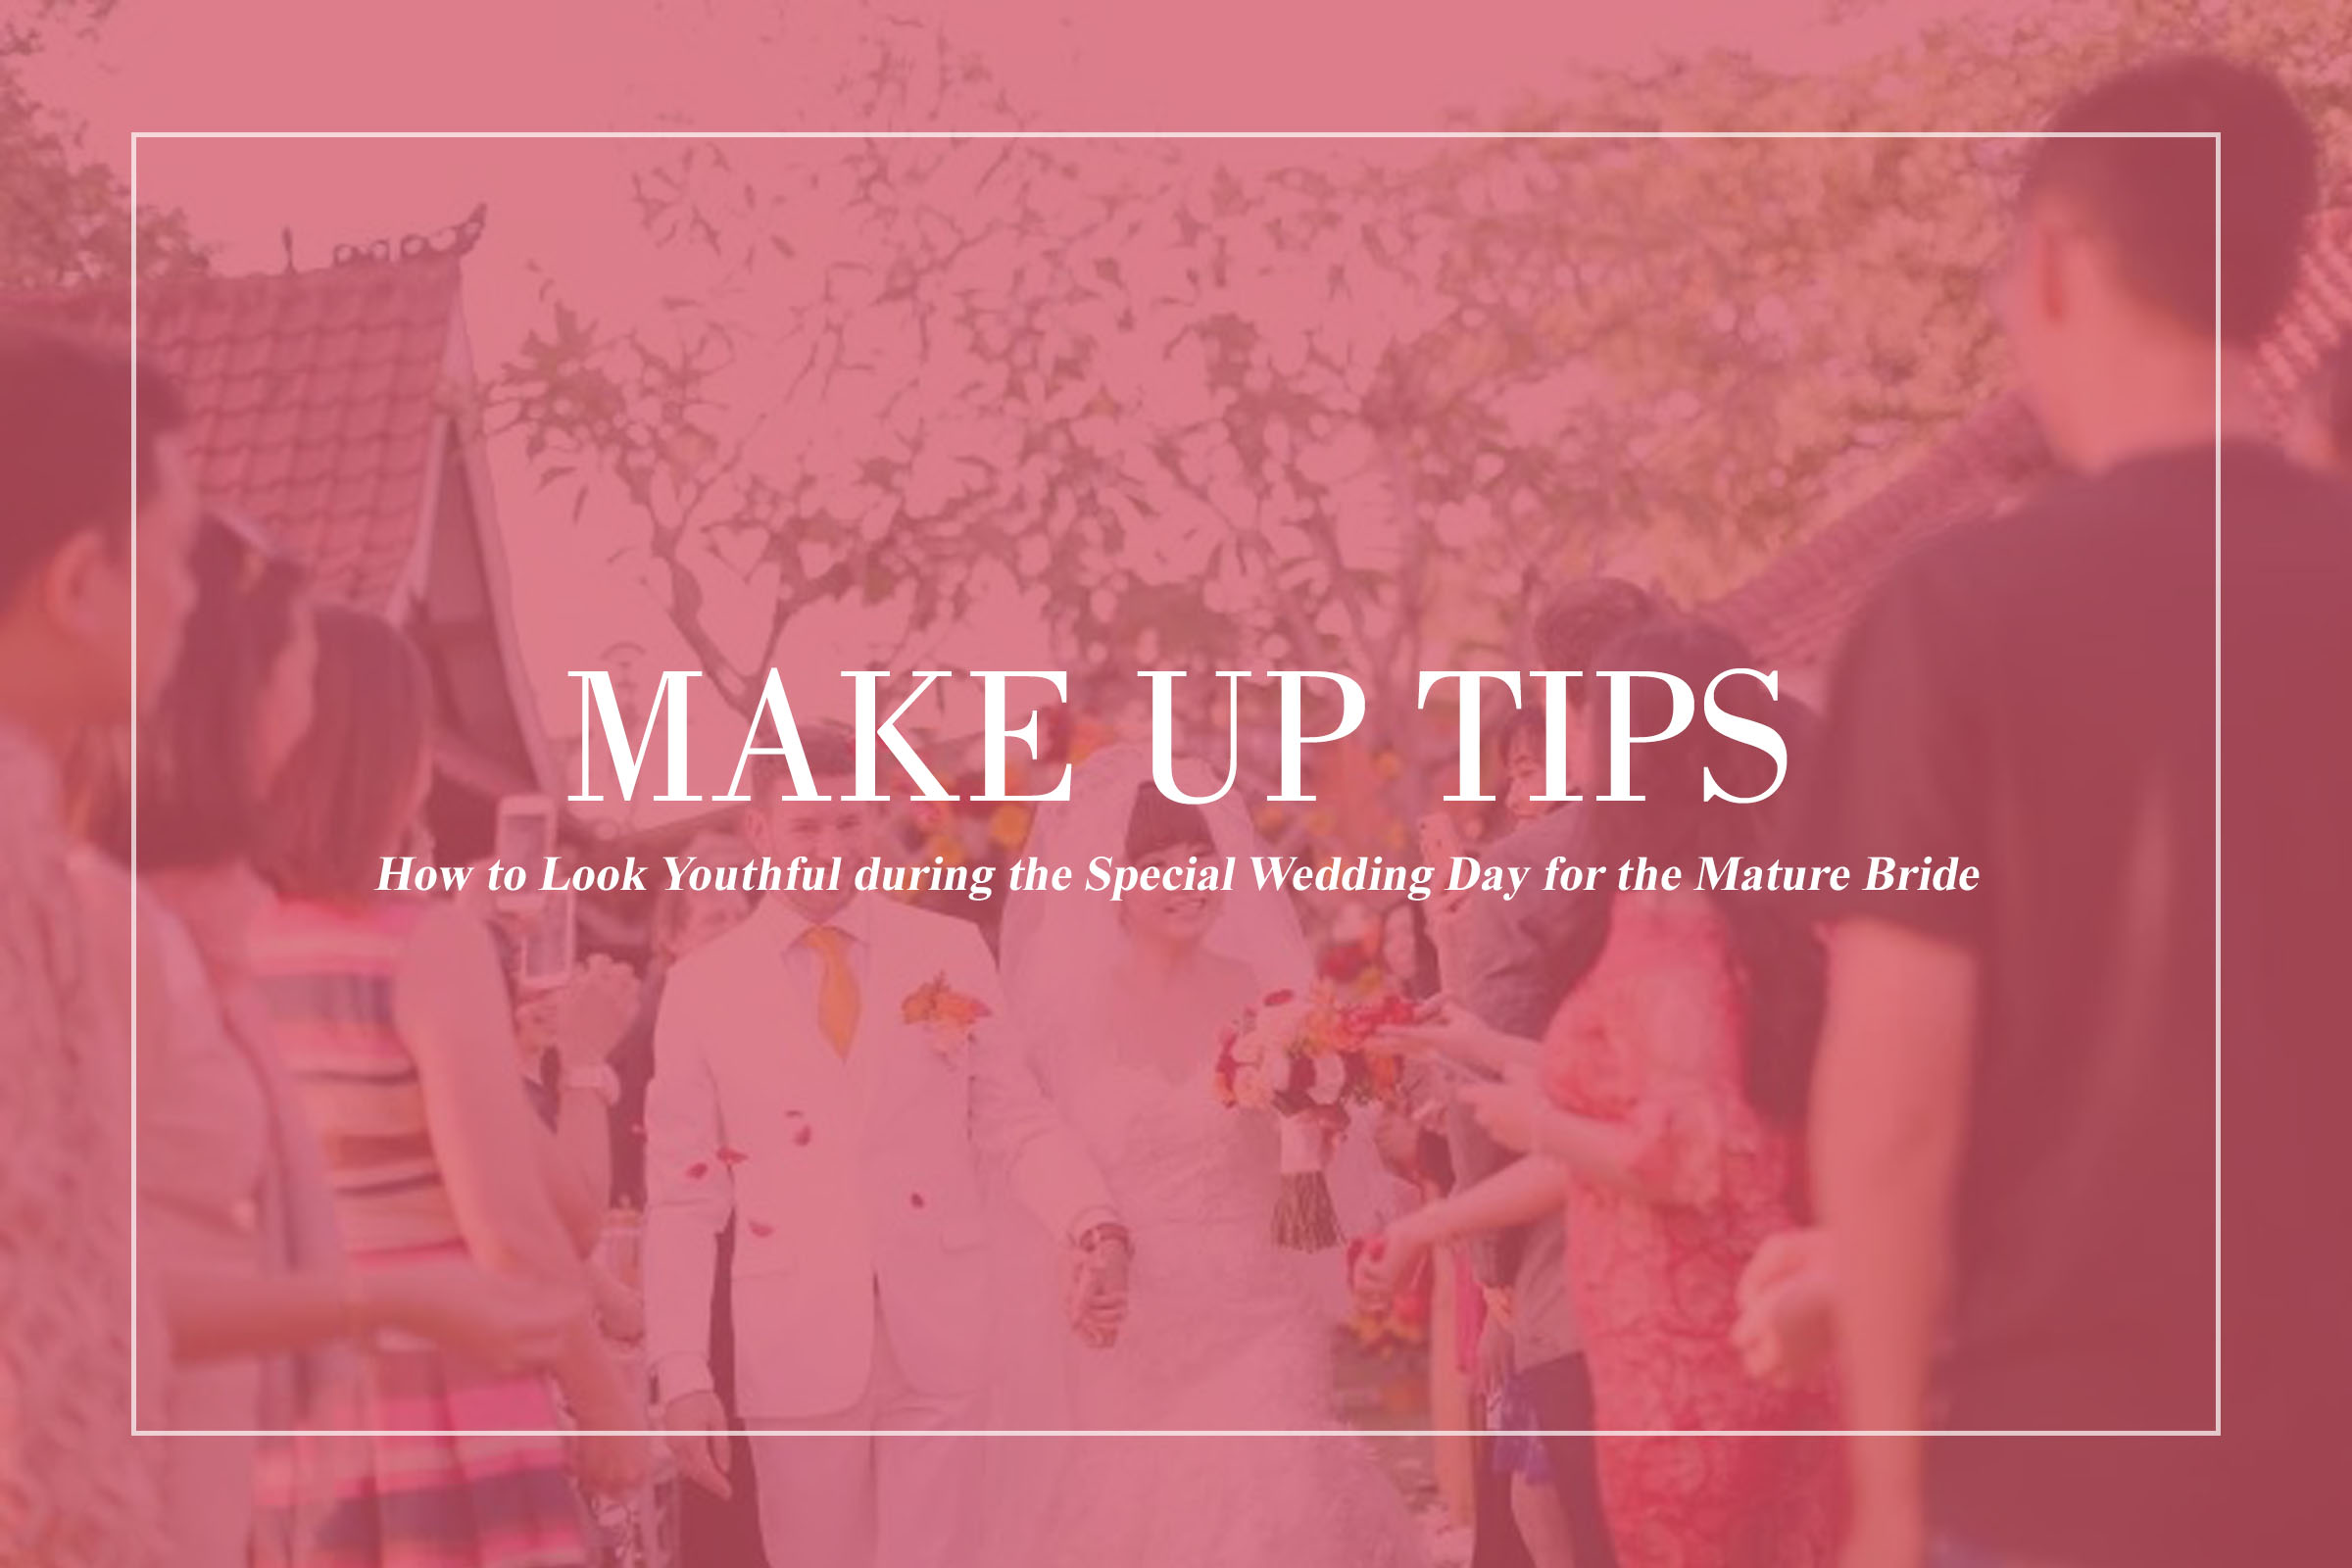 Make Up Tips For The Mature Bride